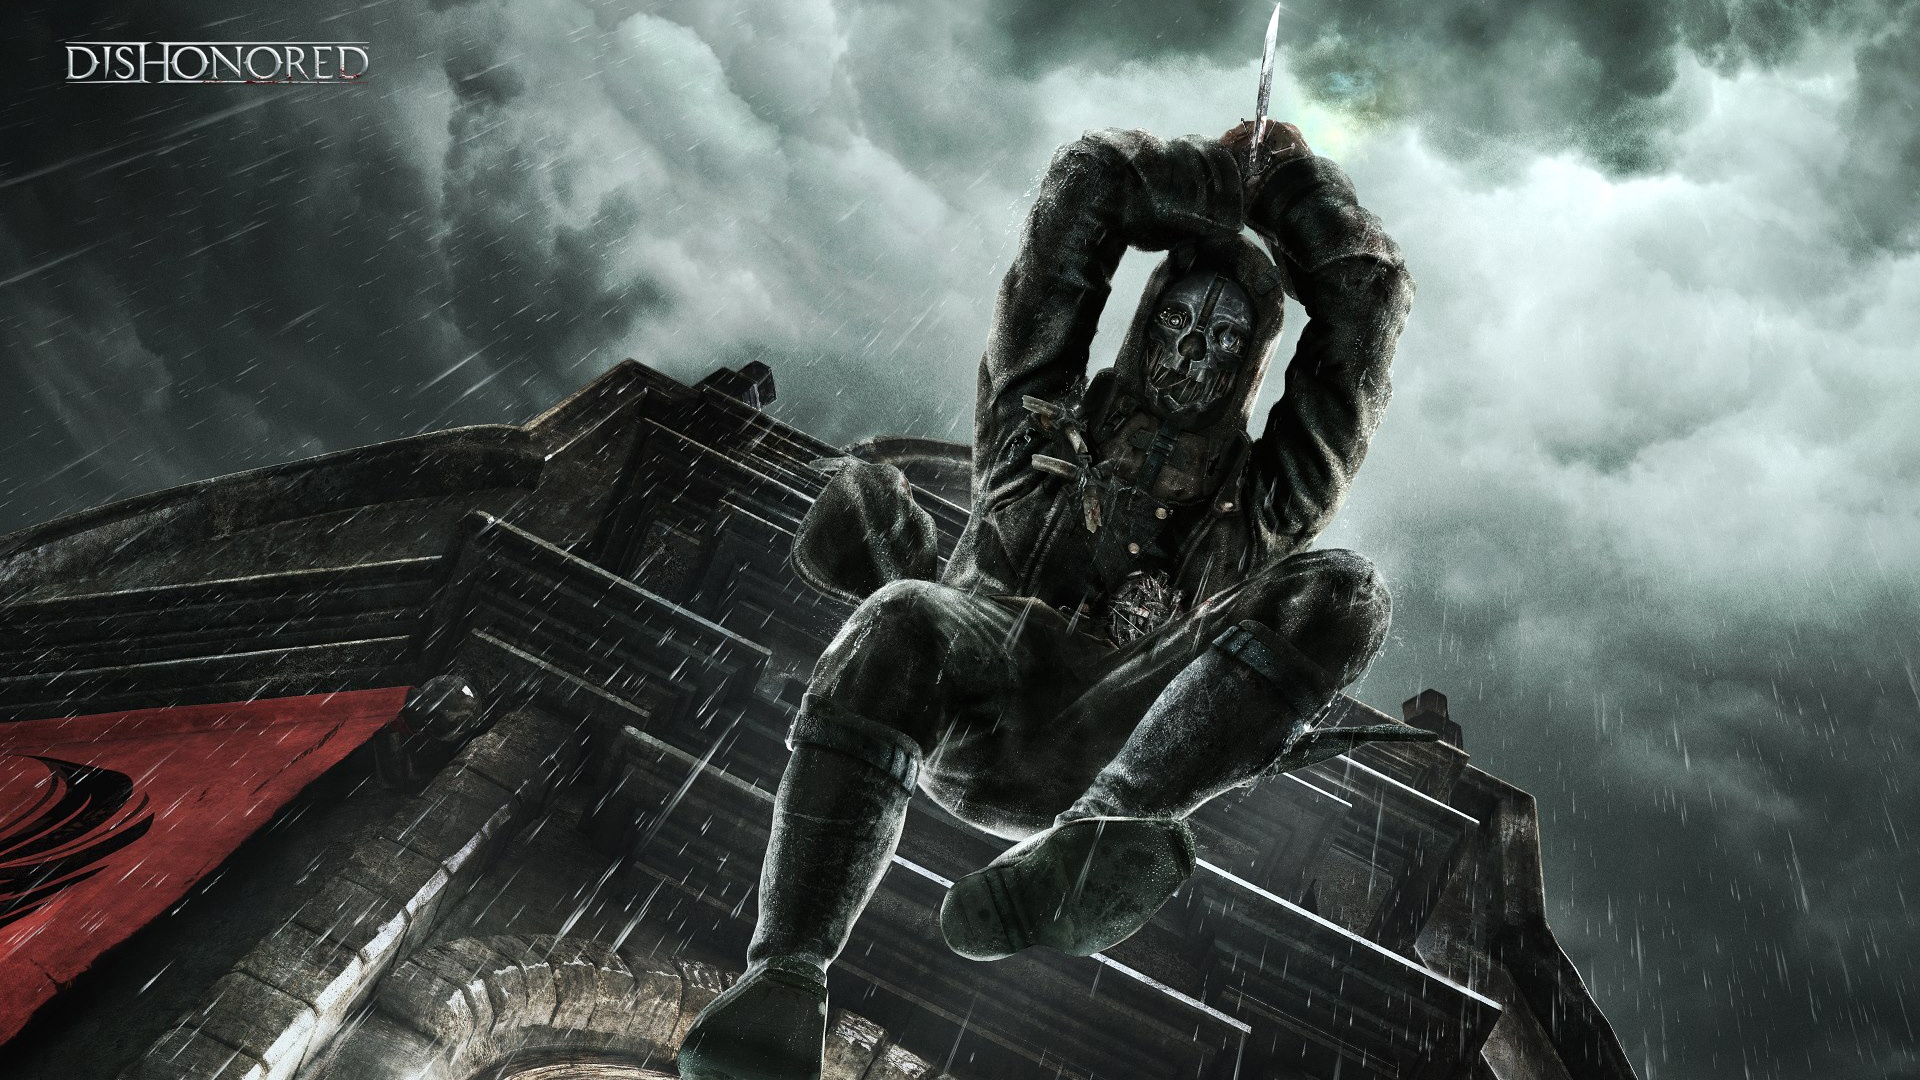 Free Download Dishonored Video Game Wallpapers Hd Wallpapers